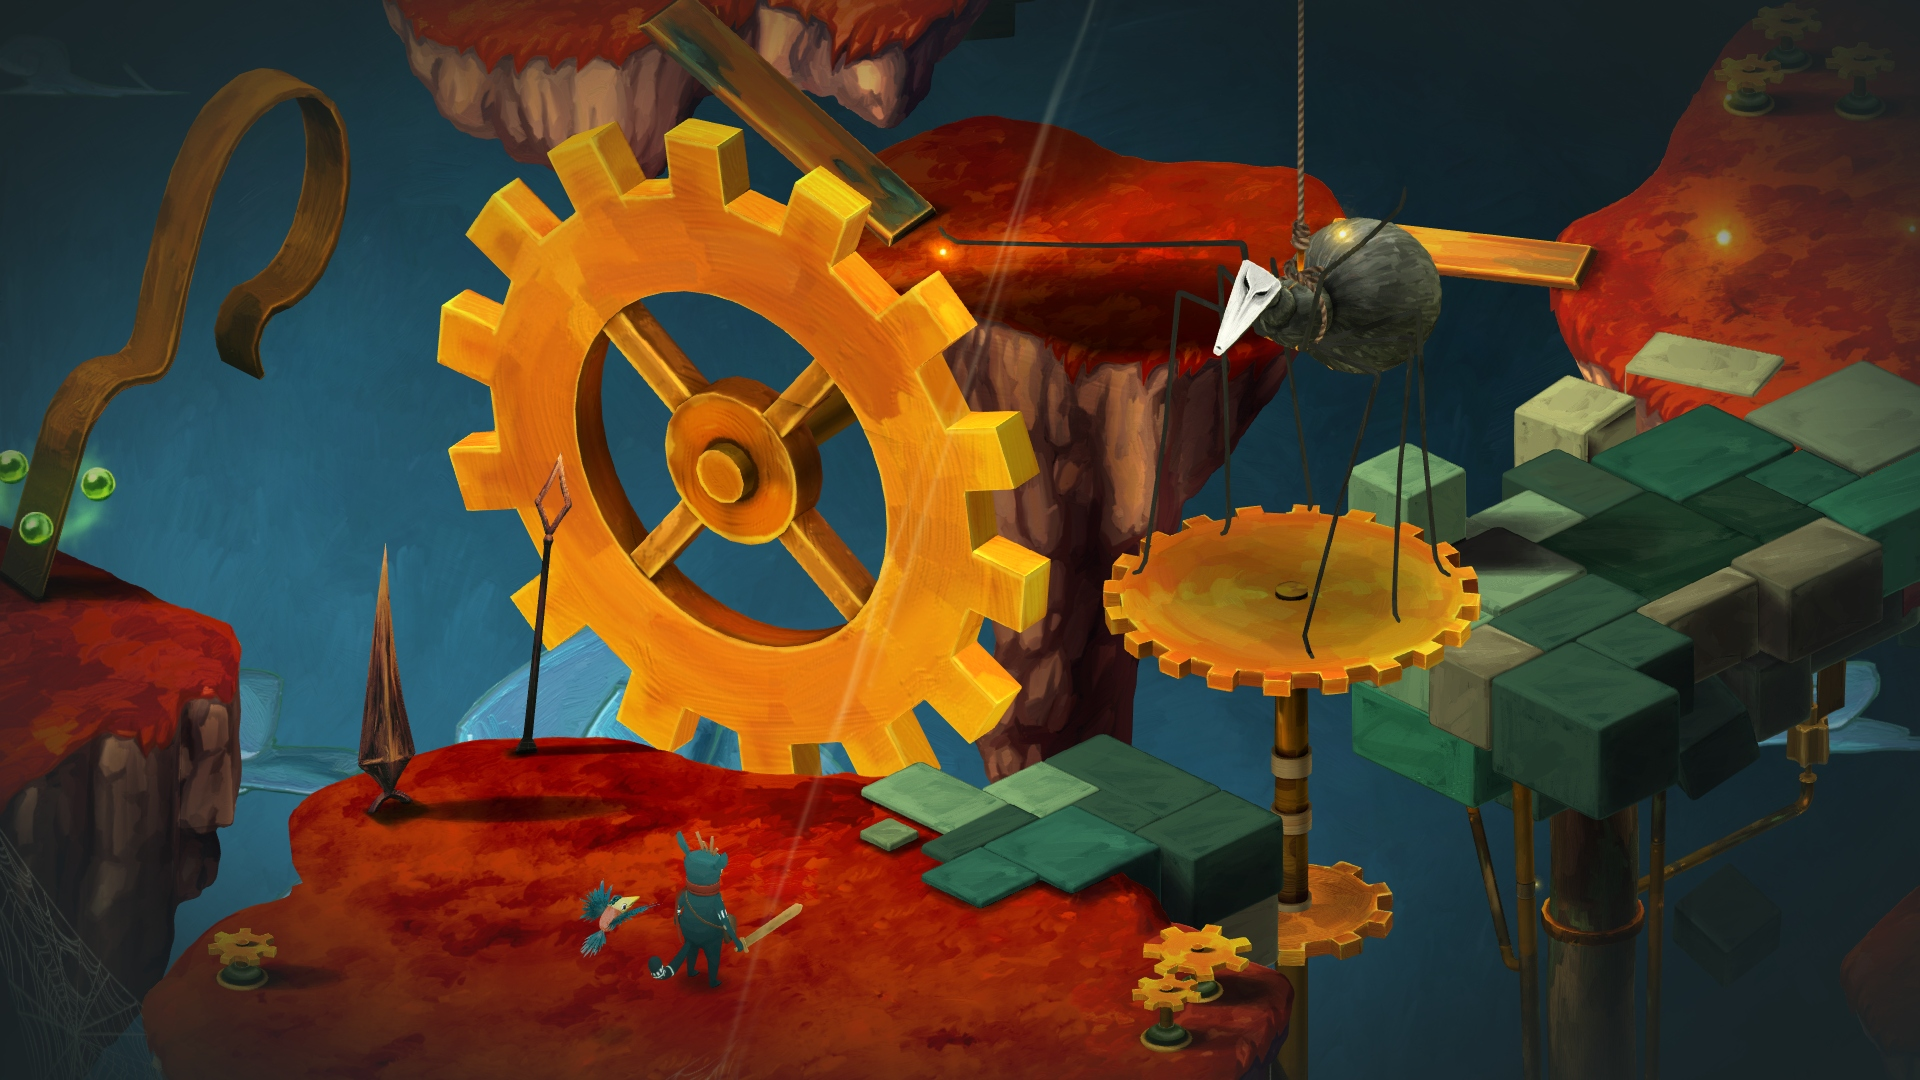 Figment is a surreal puzzle and action game for iOS that'll be available on 28th November